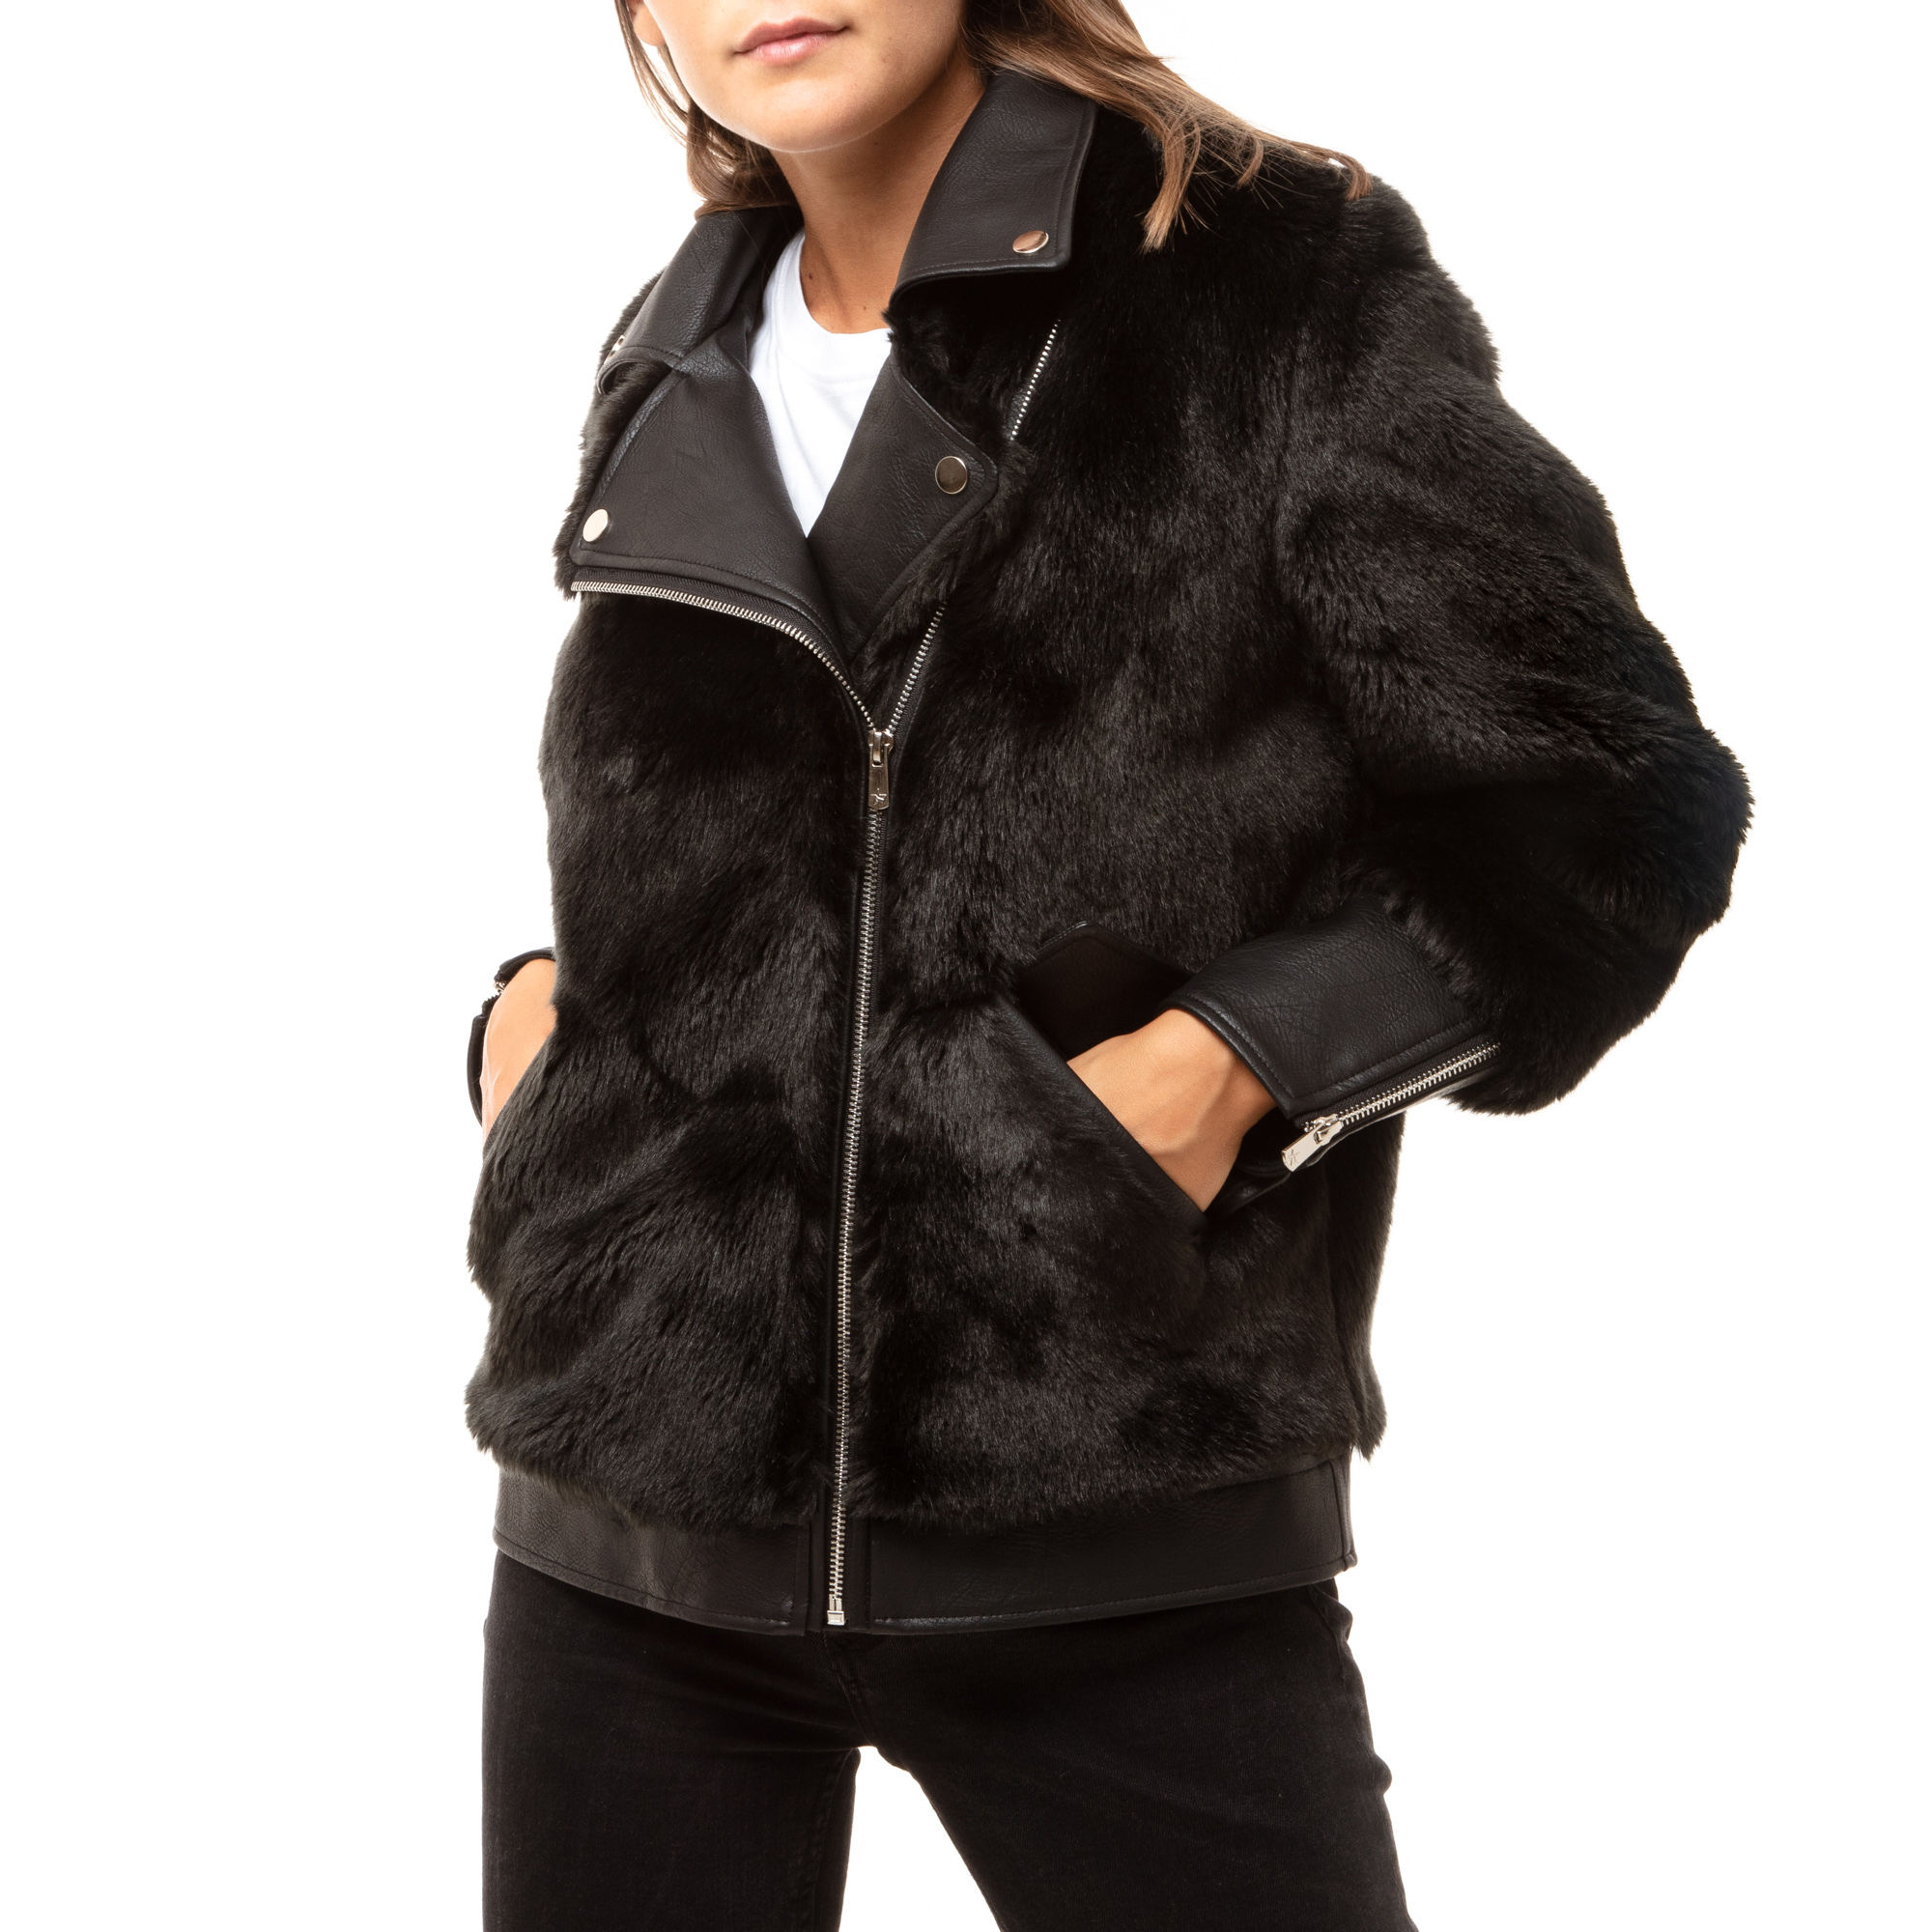 Biker jacket nera in eco fur